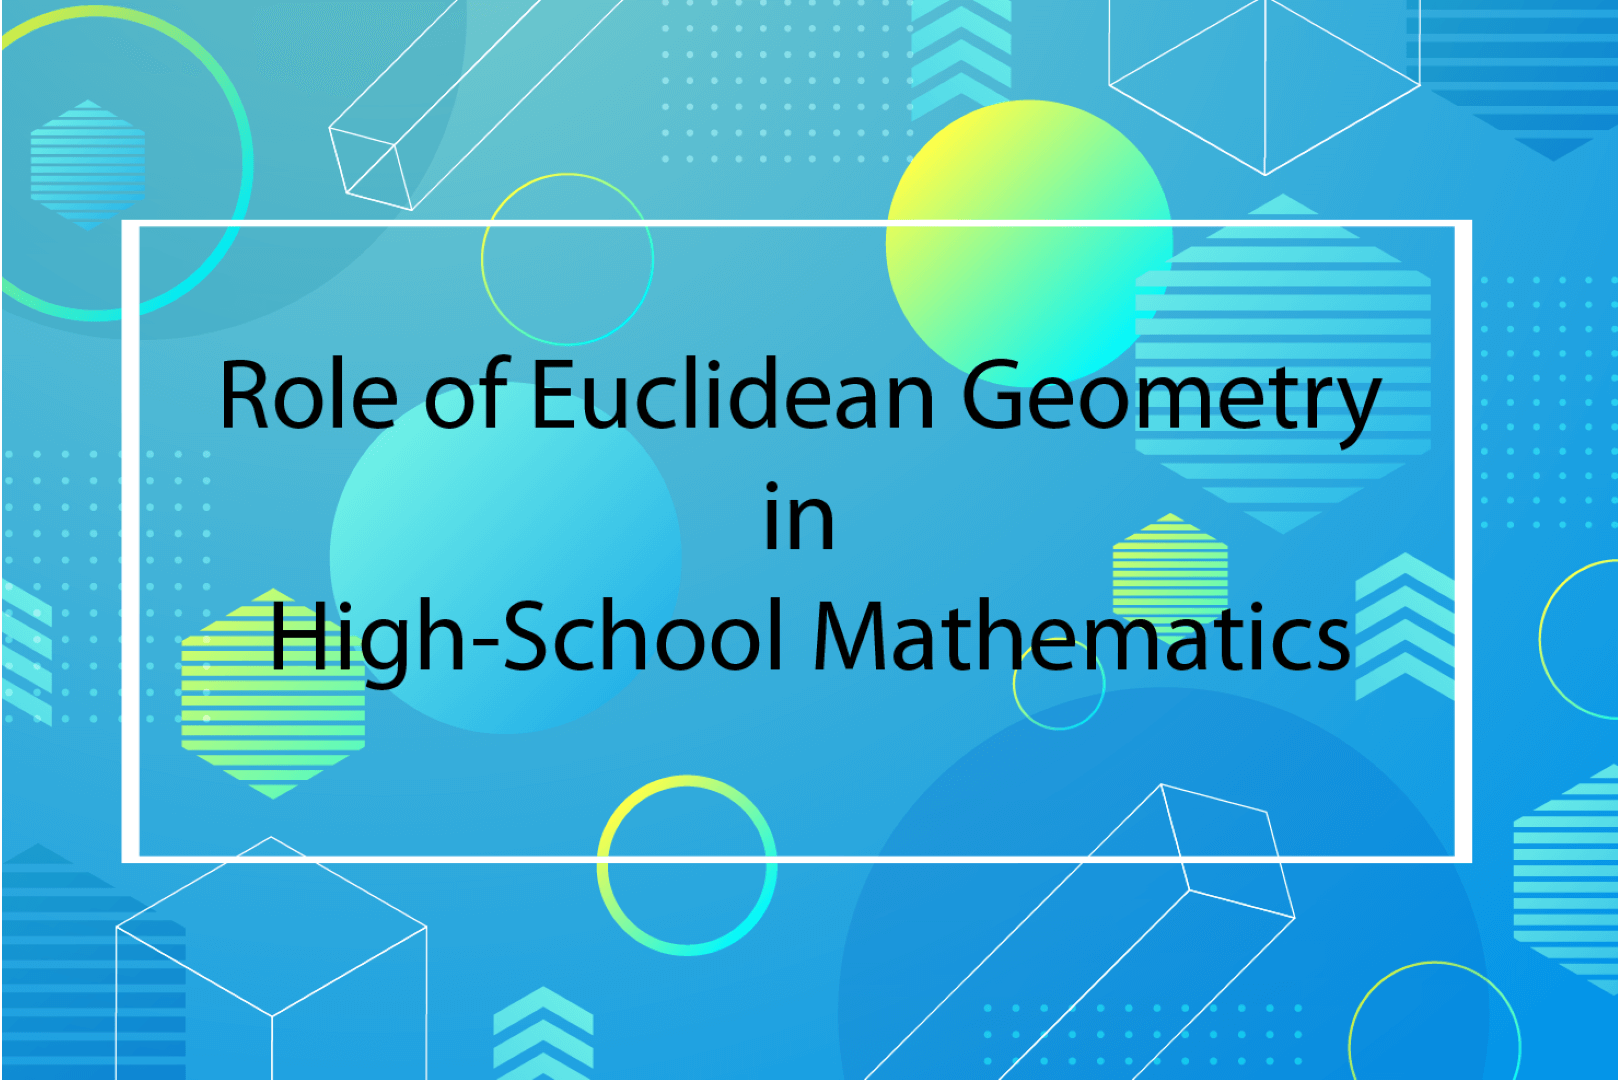 Role of Euclidean Geometry in High-School Mathematics